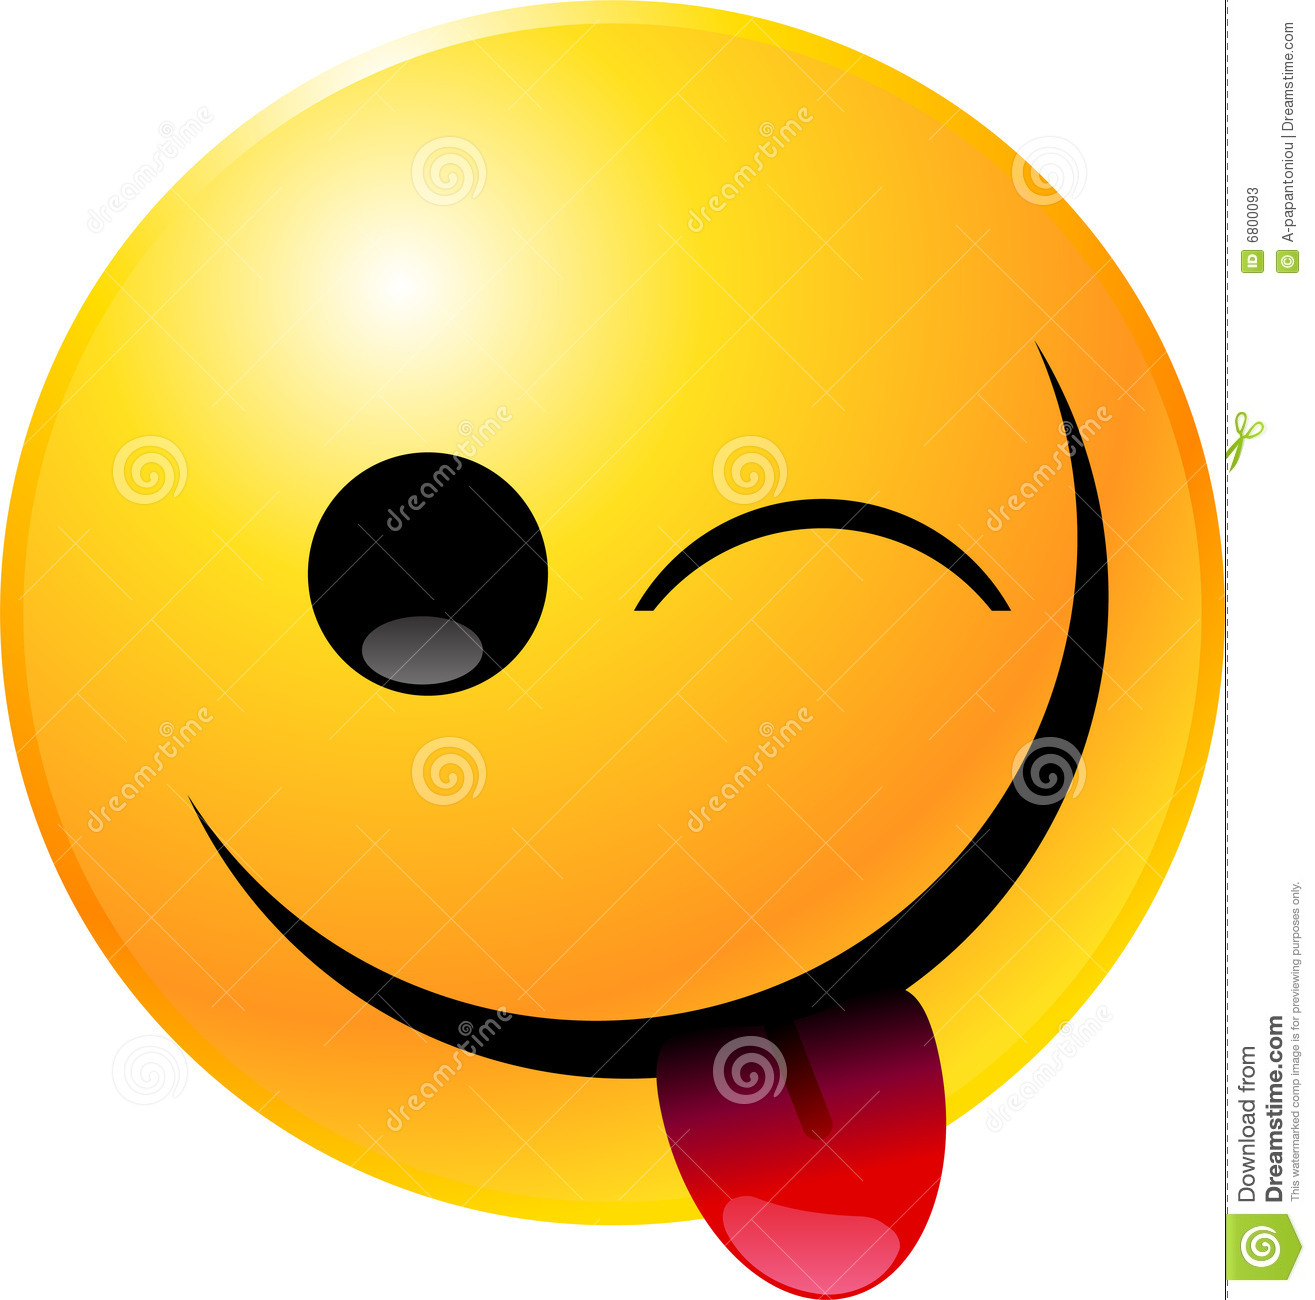 Bing Smiley Face Clip Art